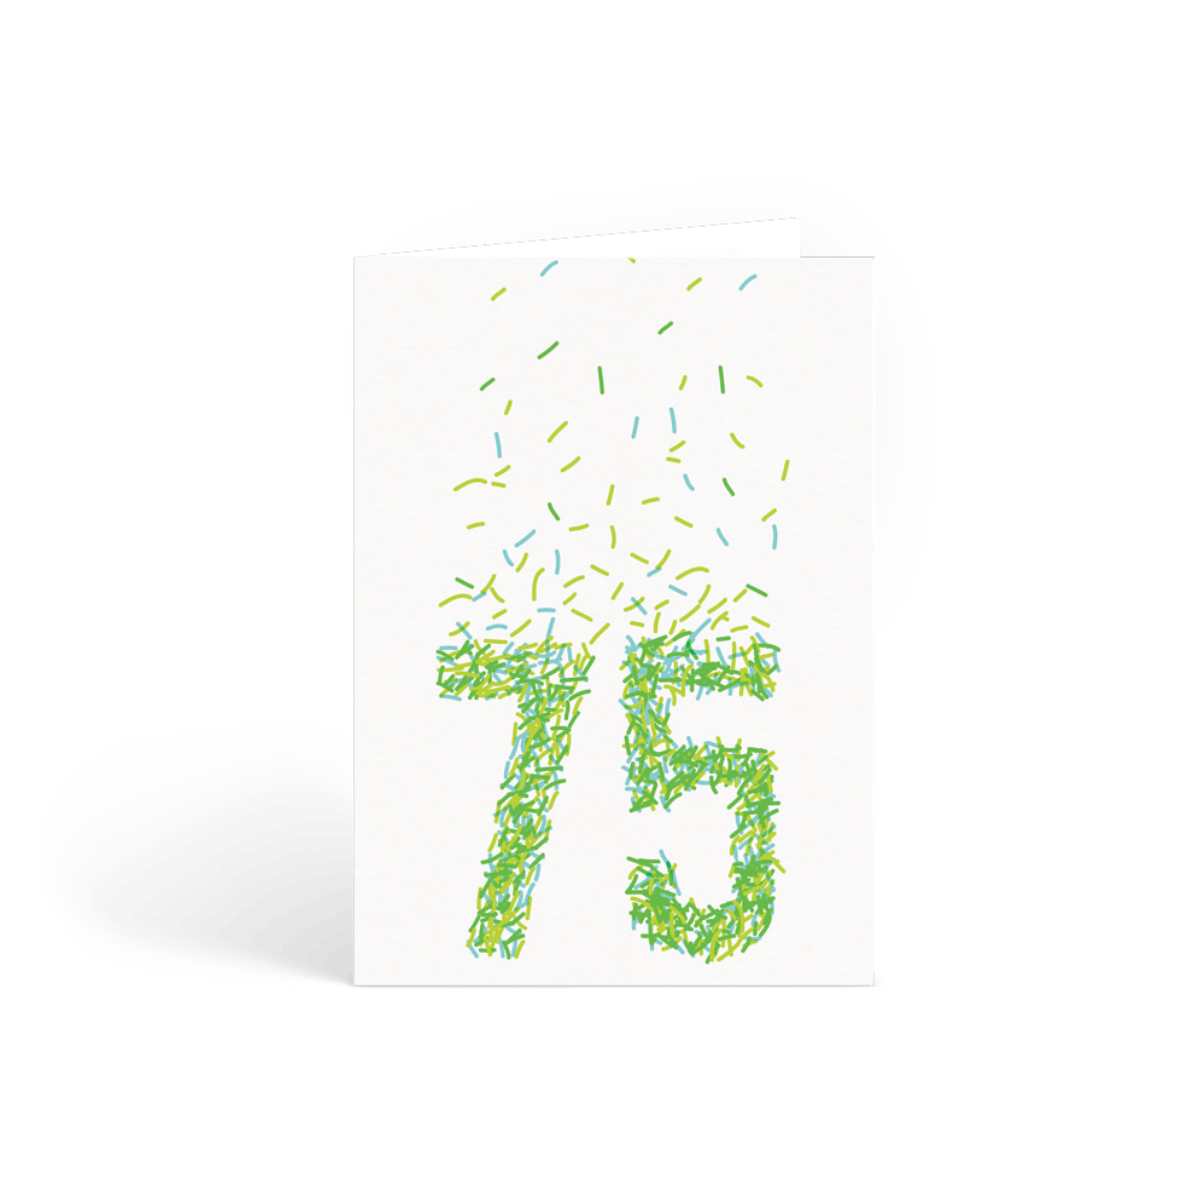 Https%3a%2f%2fwww.papier.com%2fproduct image%2f3517%2f2%2f75th sprinkles 940 avant 1453910867.png?ixlib=rb 1.1